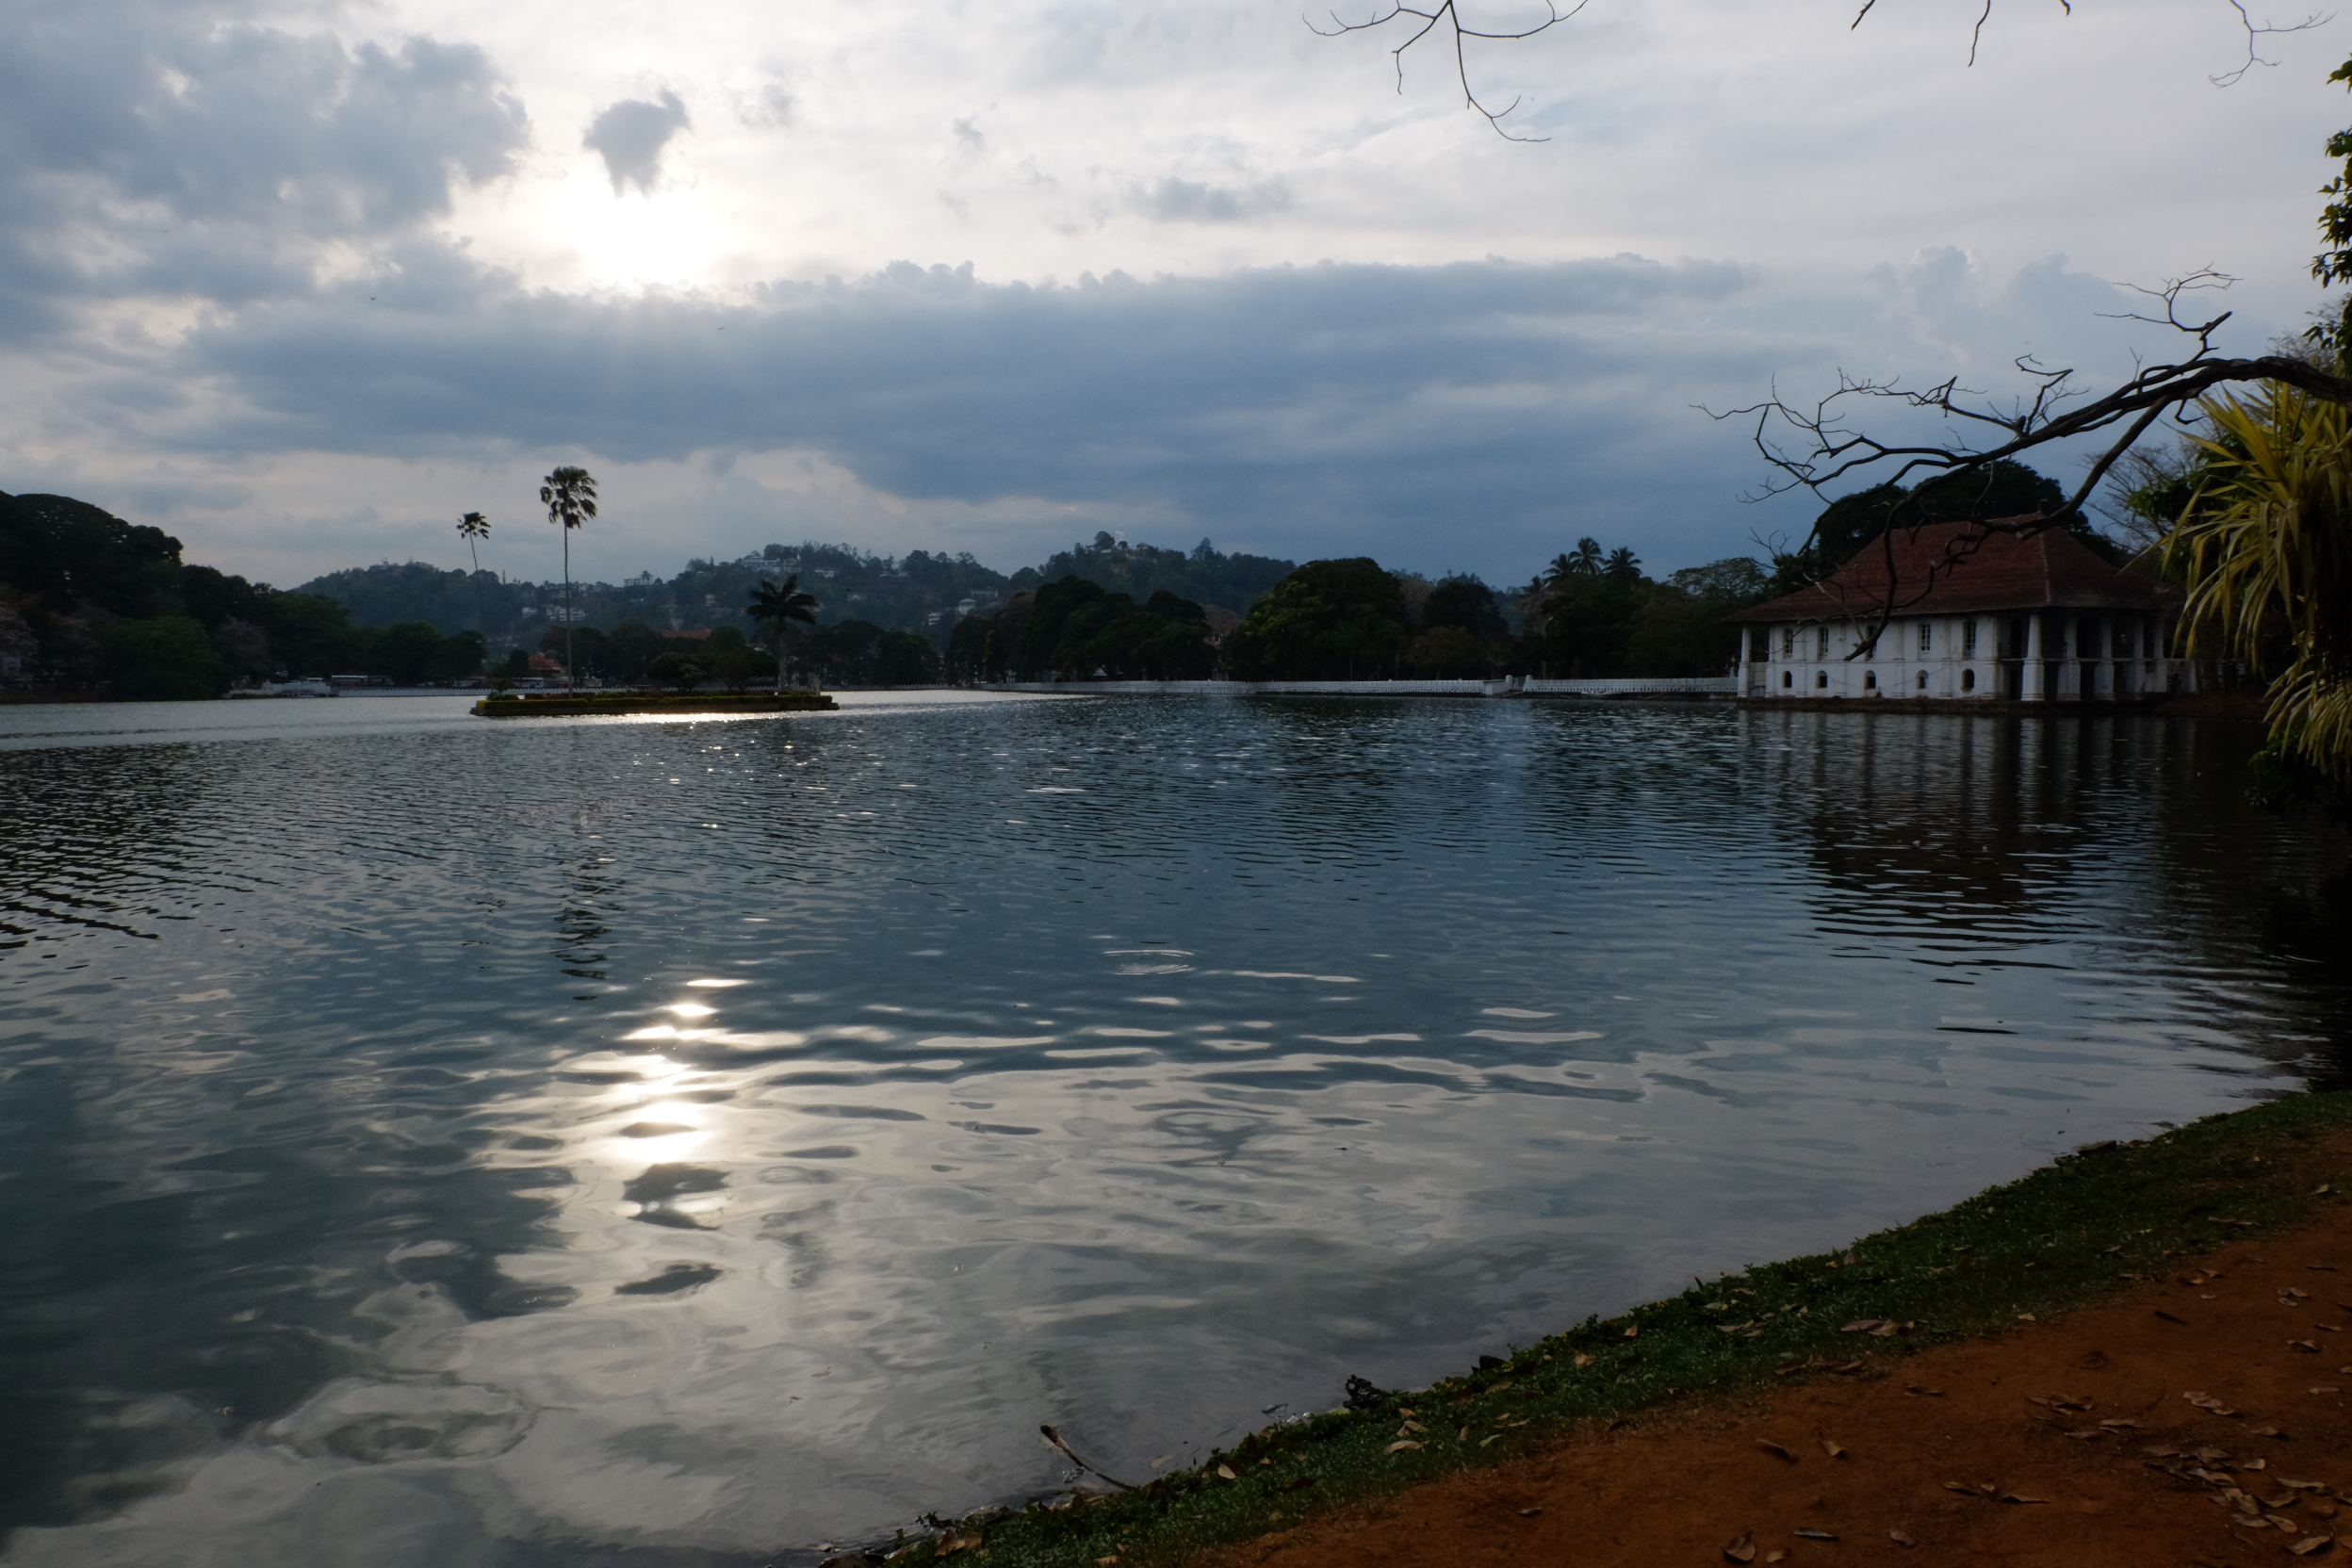 Kandy Lake with the old bath house